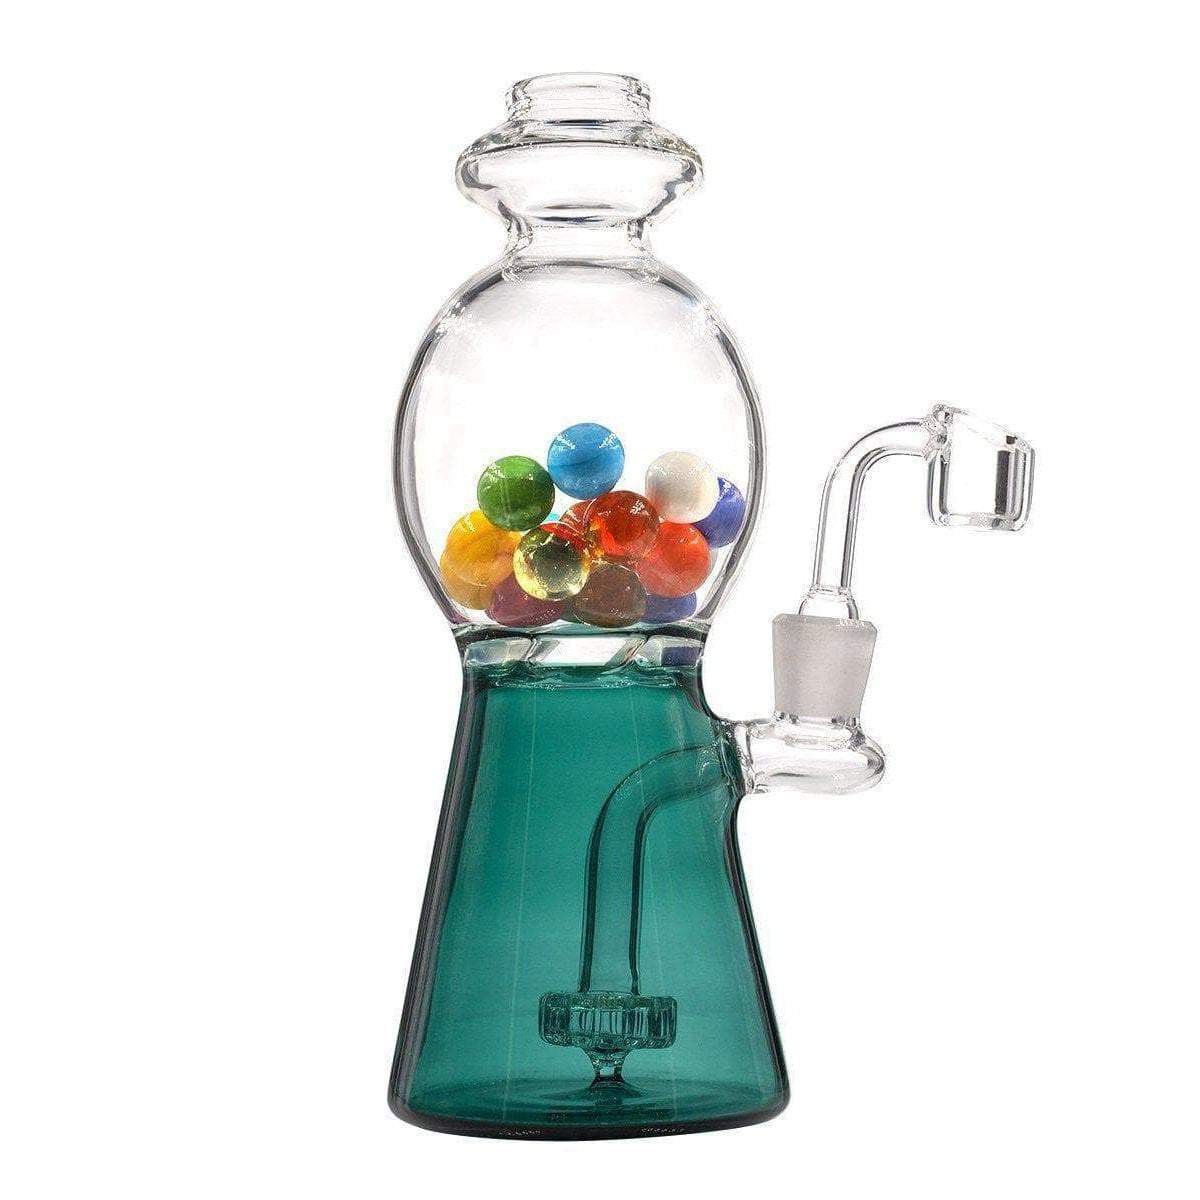 Cute 8-inch glass dab rig smoking device looks like coin-operated candy bubblegum machine